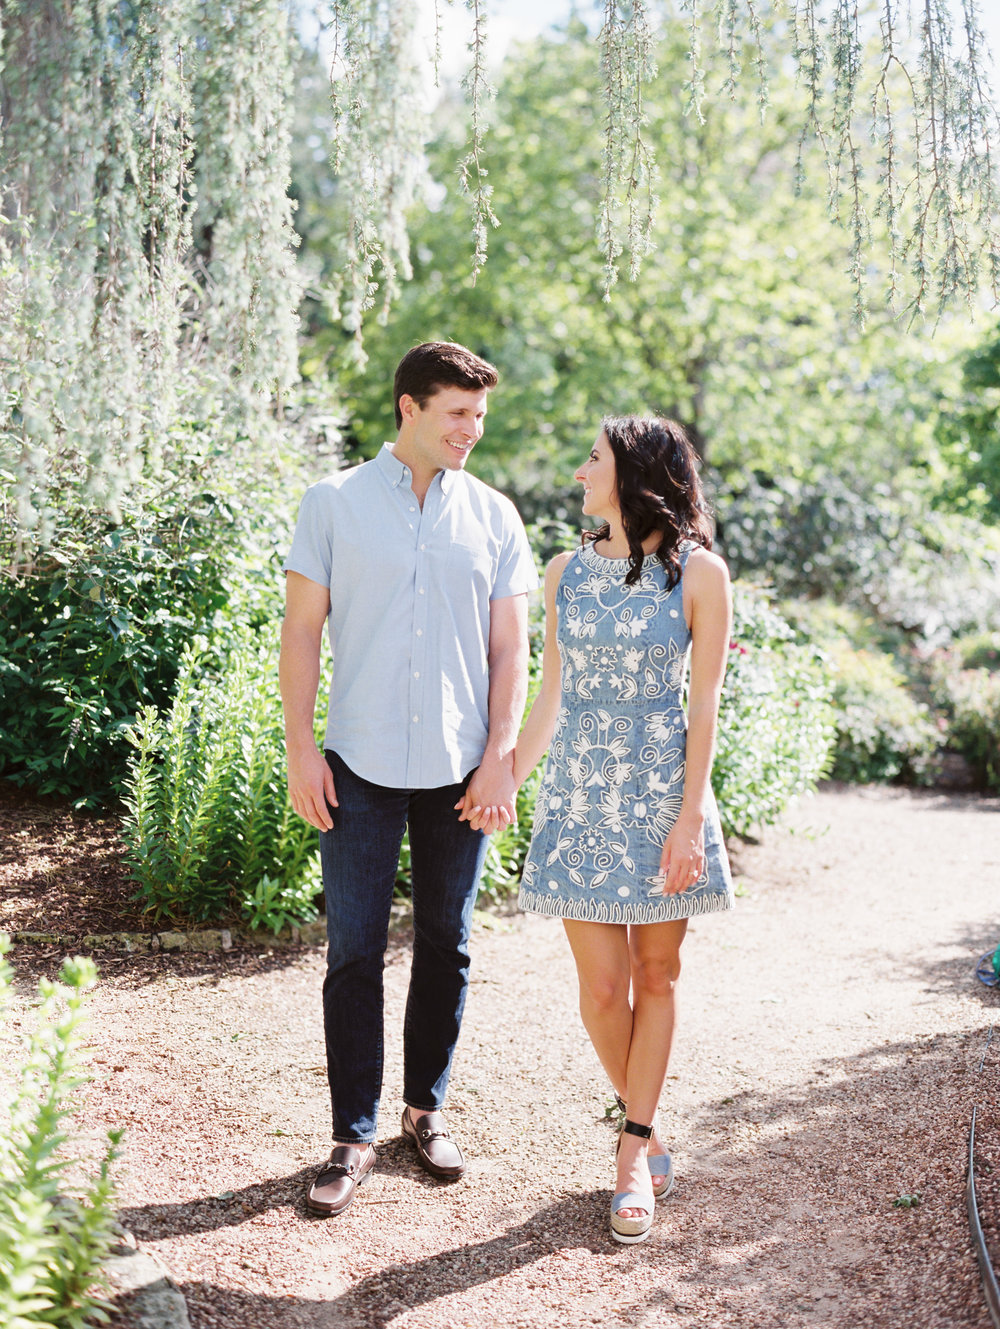 dallas-texas-dallas-arboretum-botanical-garden-engagements-ar-photography-teresa-rowan-71.jpg